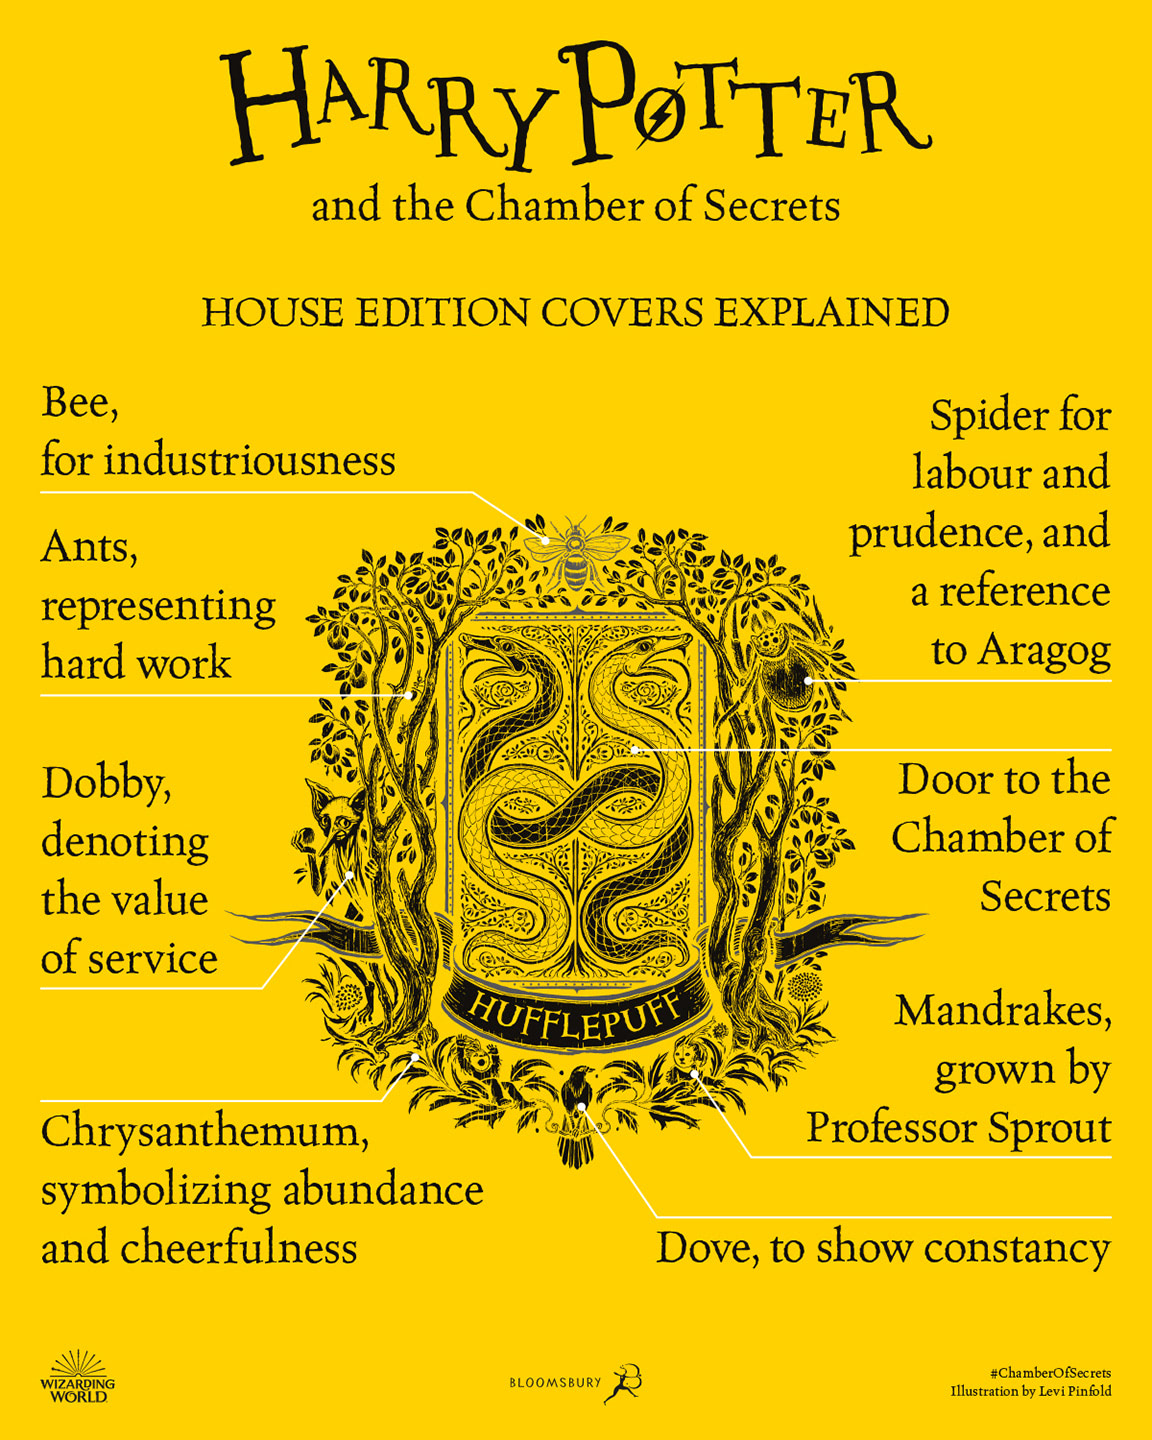 'Chamber of Secrets' house edition cover artwork chart (Hufflepuff)